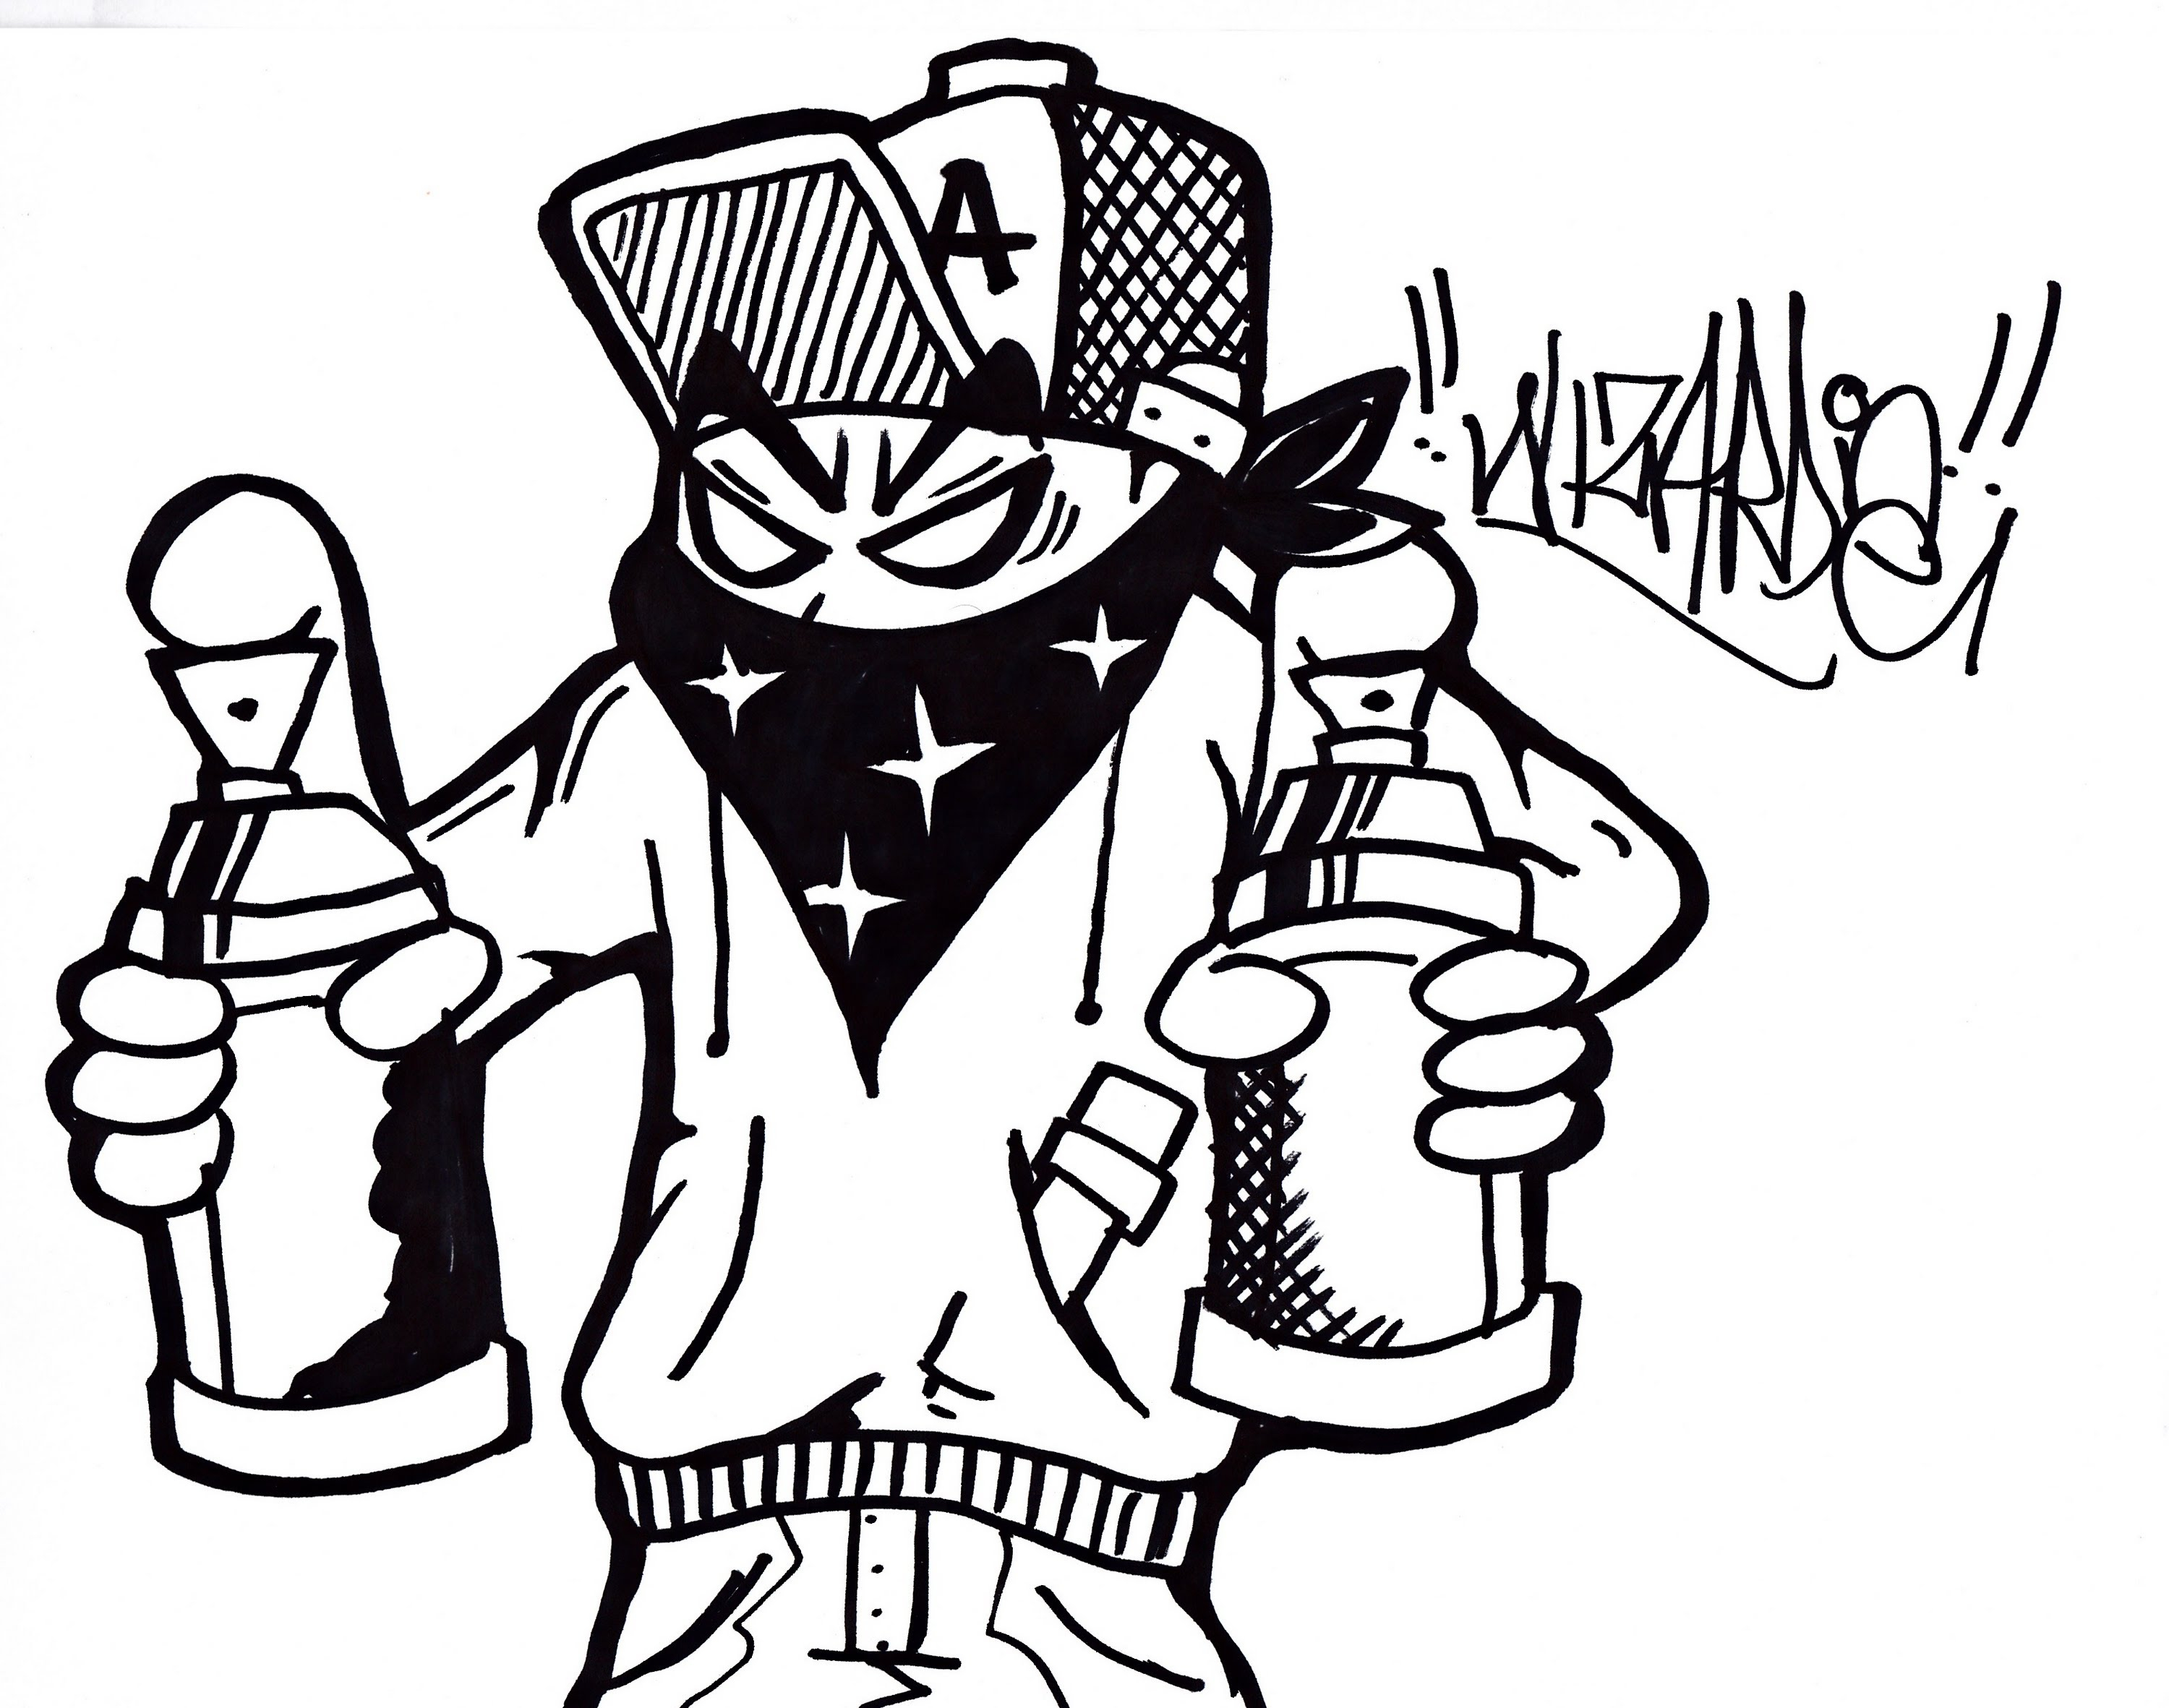 3000x2363 Graffiti People Sketches How To Draw A Graffiti Character Holding